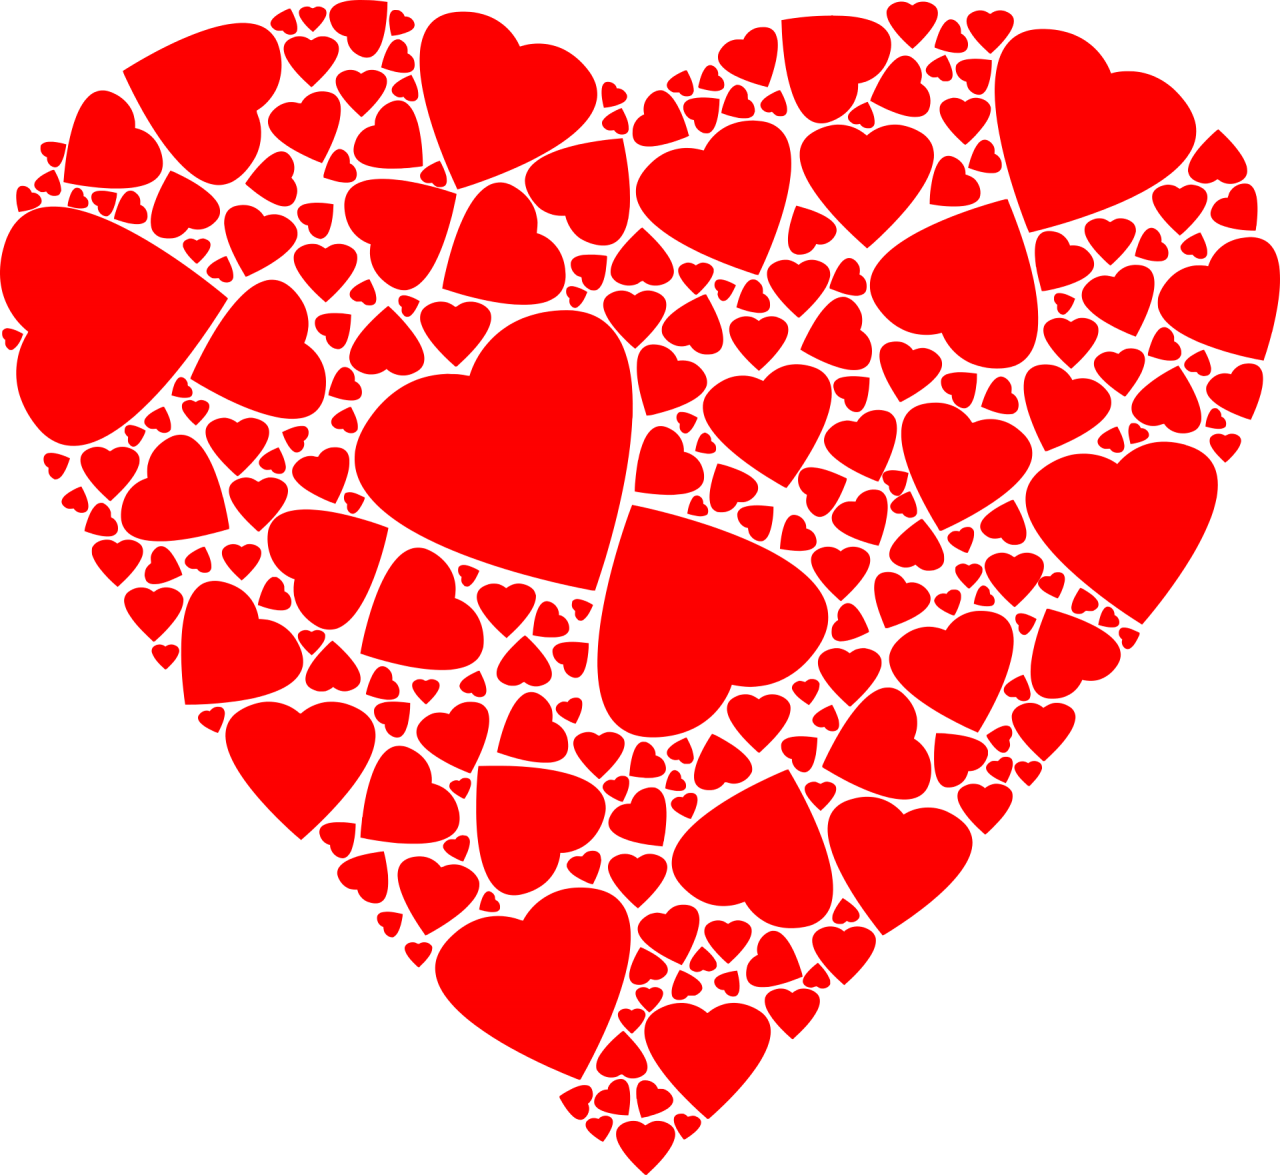 Red Hearts within a Heart PNG Image